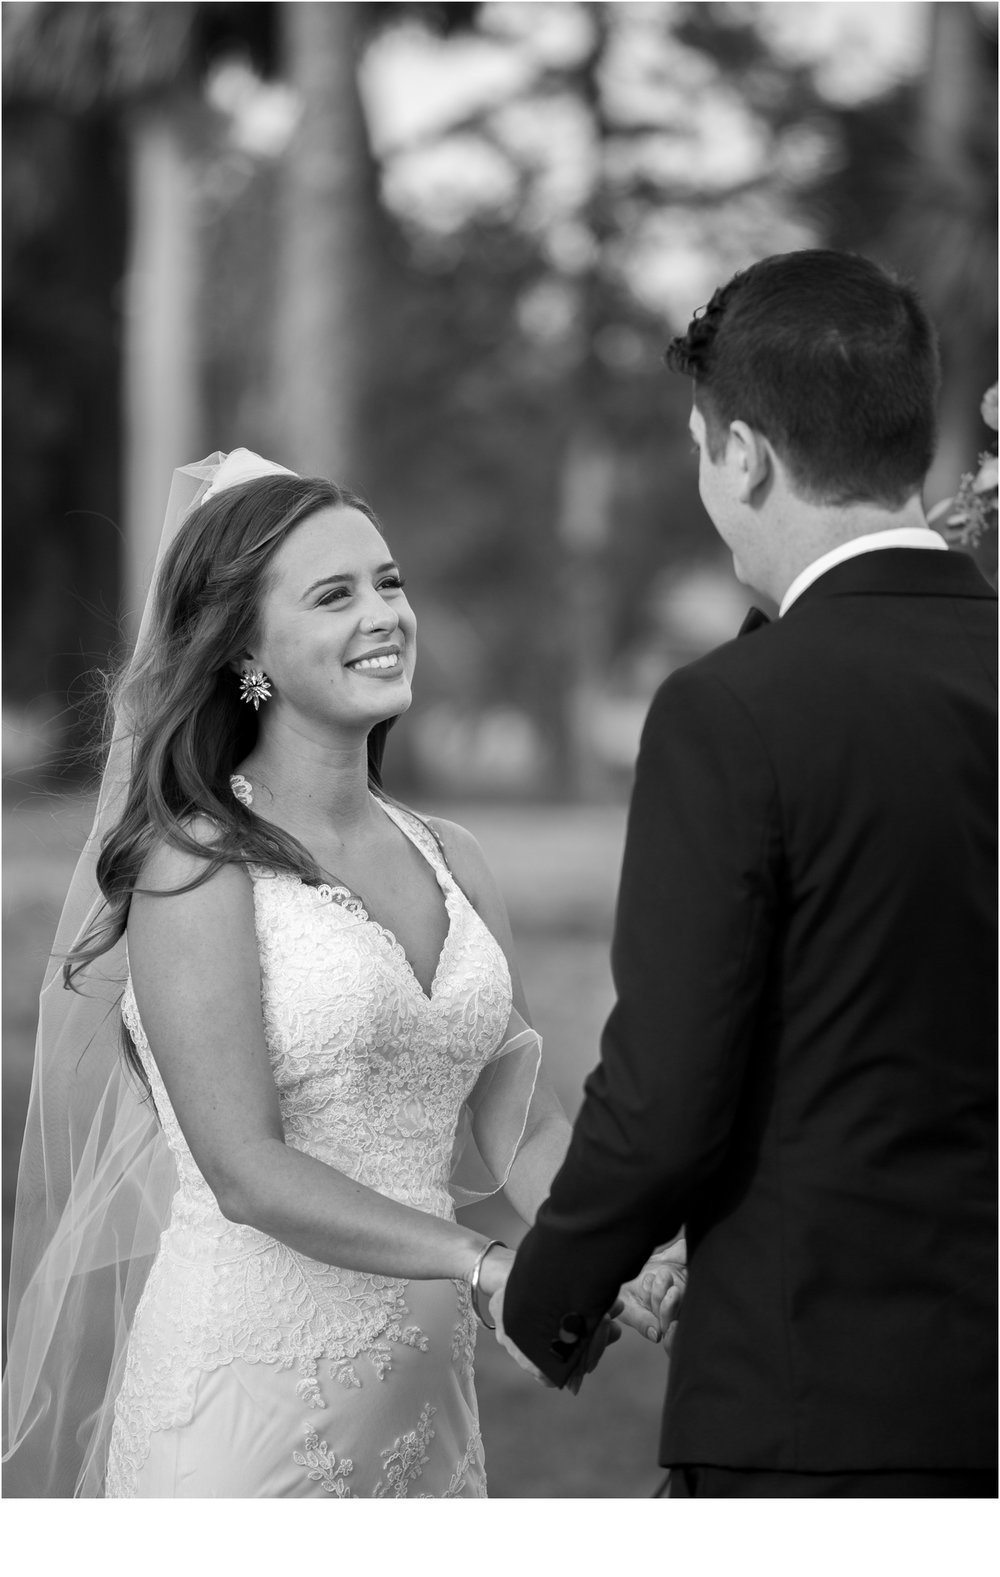 Rainey_Gregg_Photography_St._Simons_Island_Georgia_California_Wedding_Portrait_Photography_0818.jpg